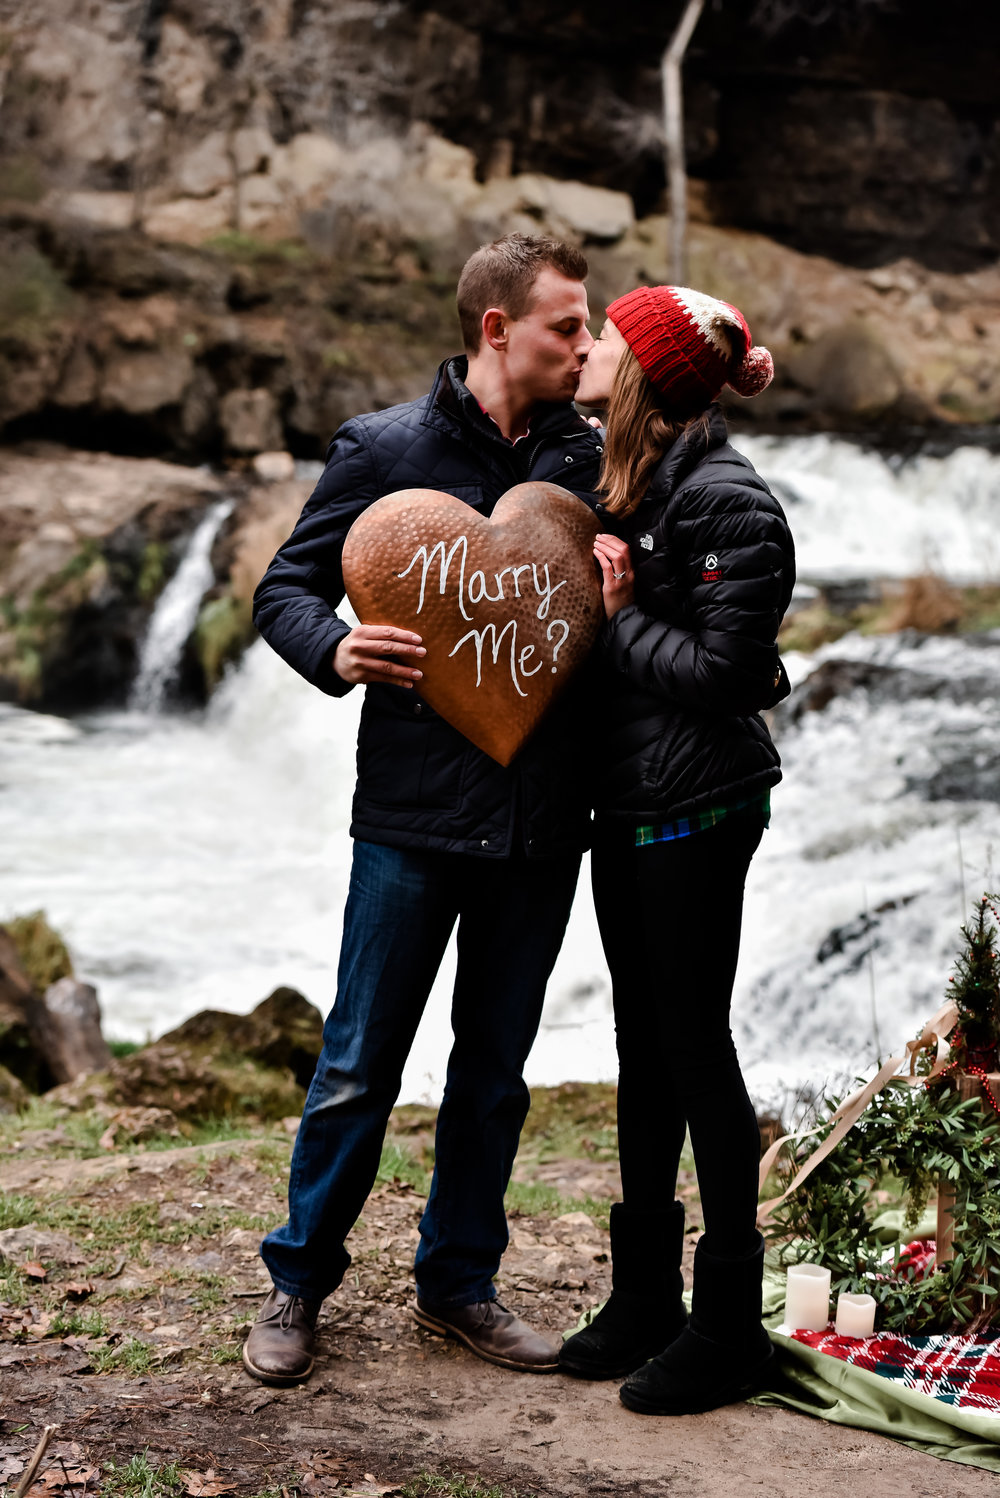 Christmas Proposal Inspiration at Waterfall - Willow River State Park Falls in Hudson, Wisconsin - Twin Cities Proposal Photographer